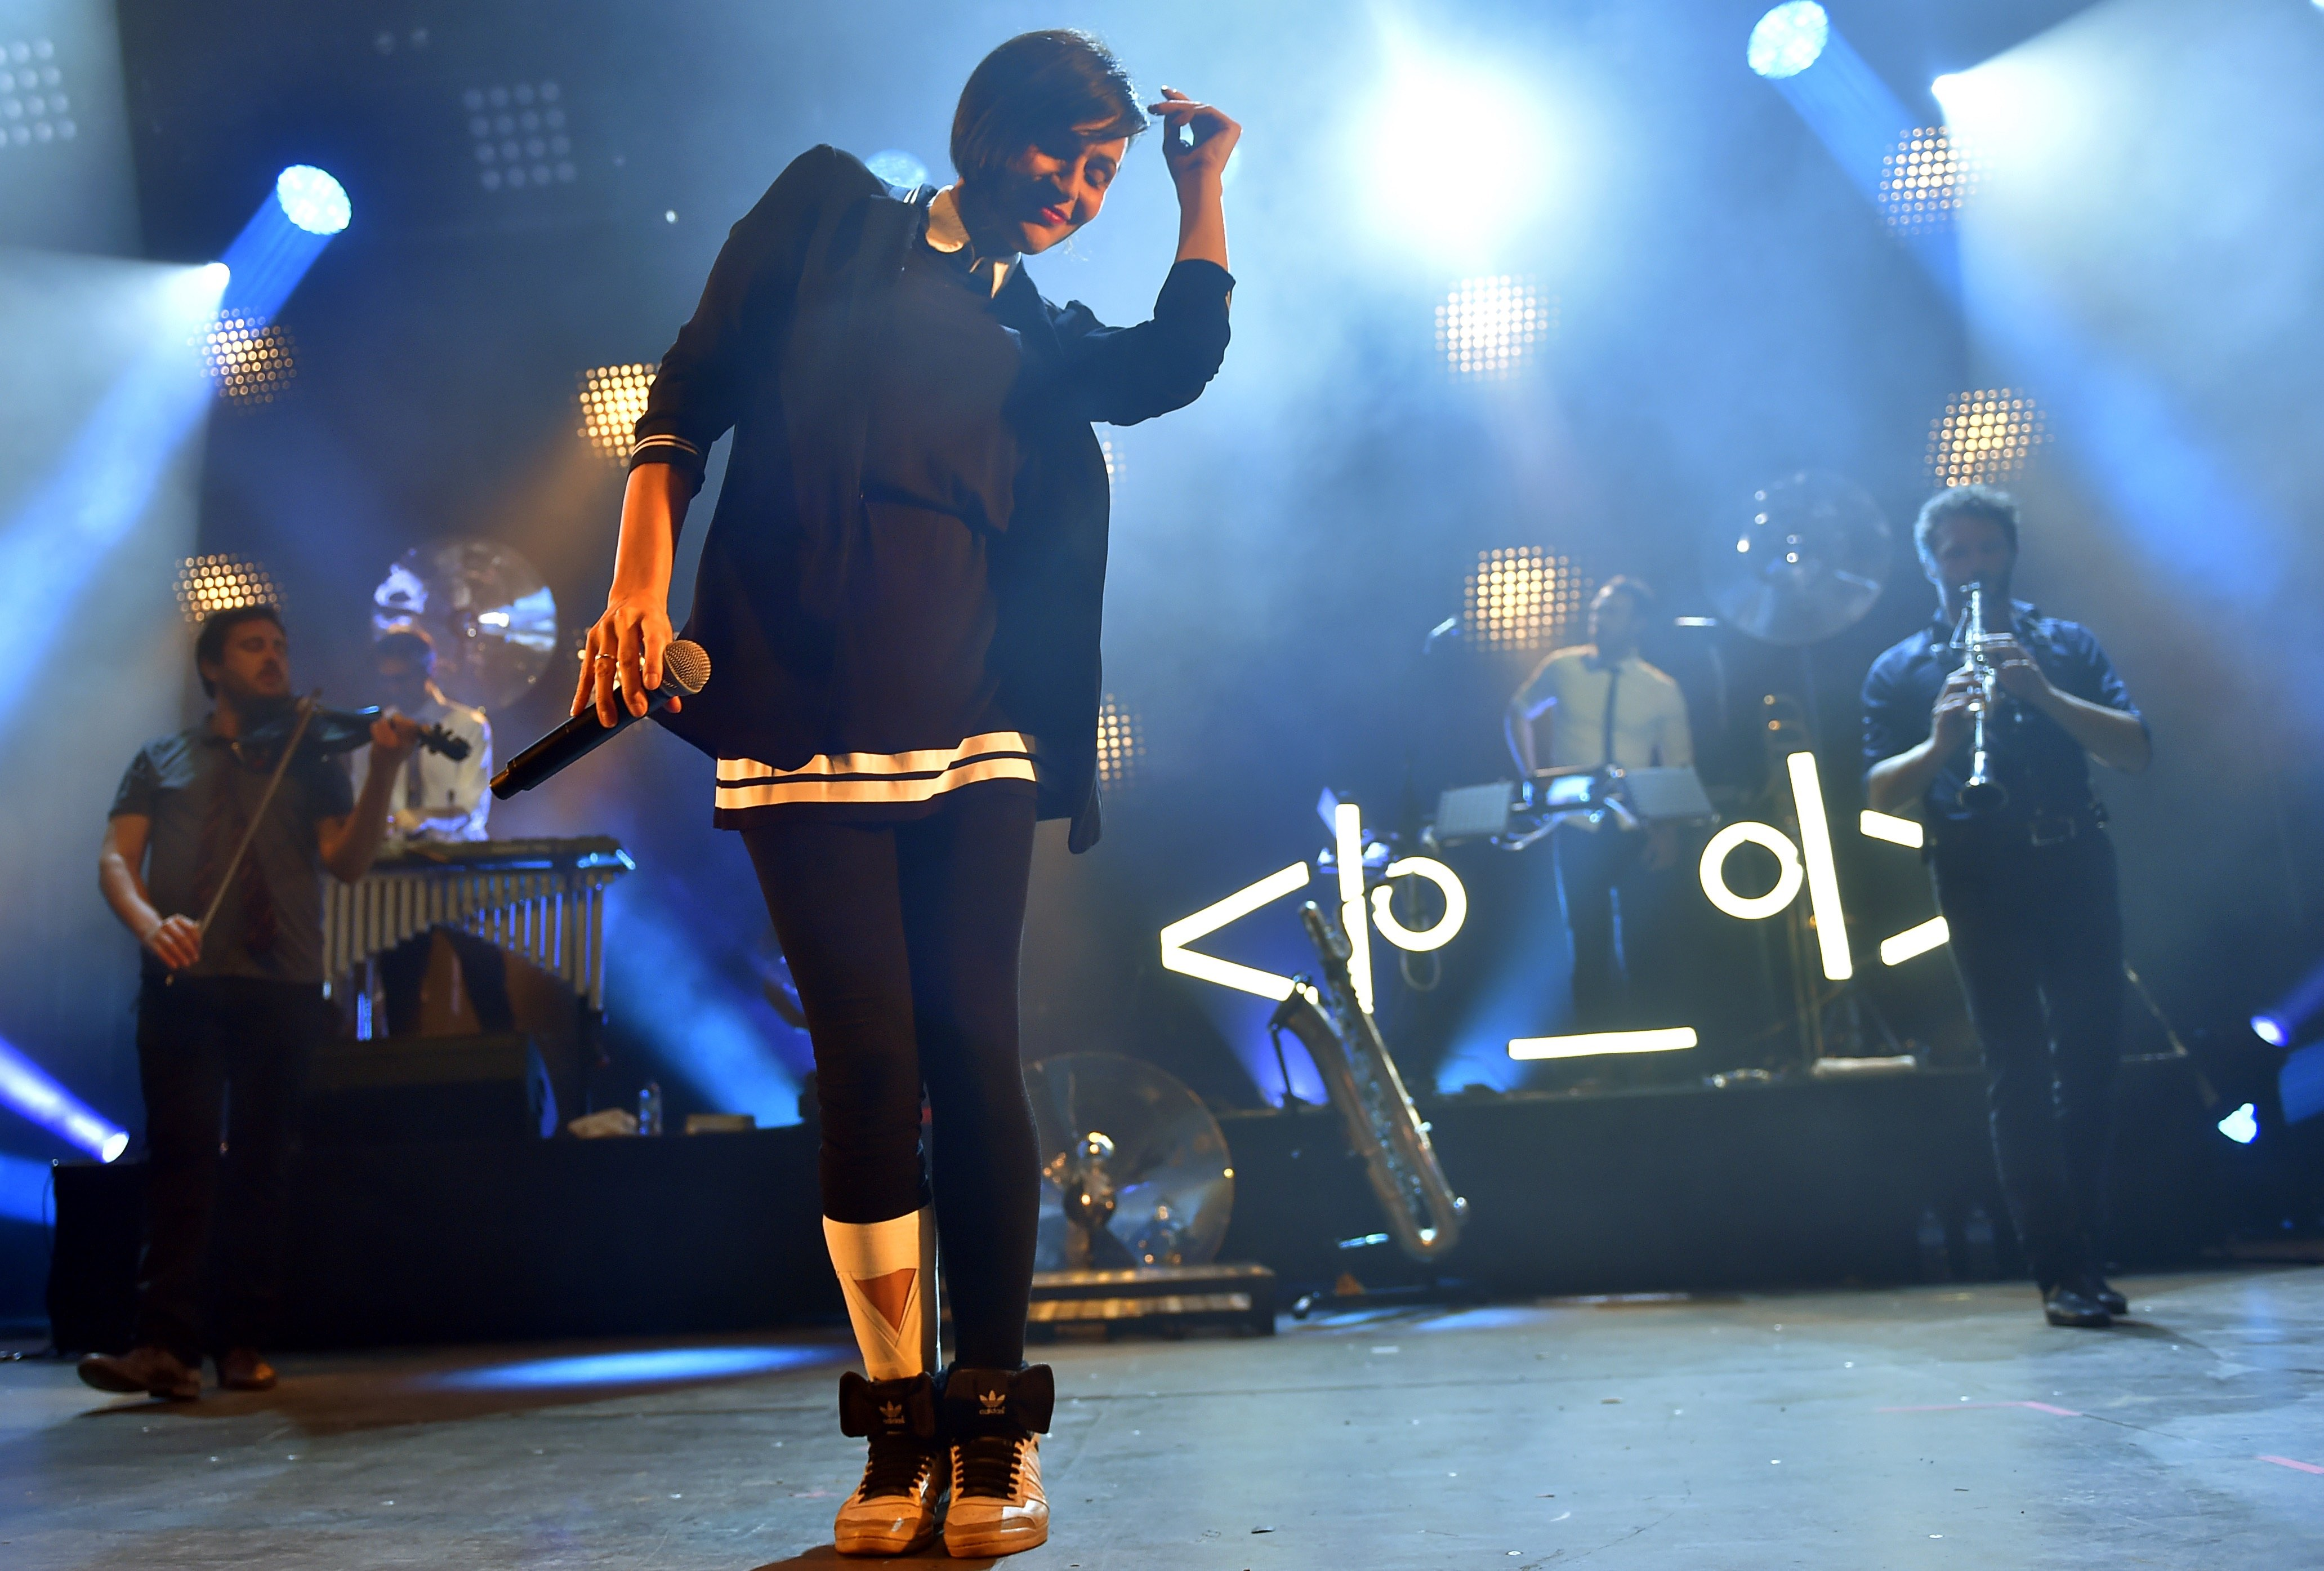 French electro swing band Caravan Palace performs during the Festival du Bout du Monde music festival, on August 5, 2016 in C